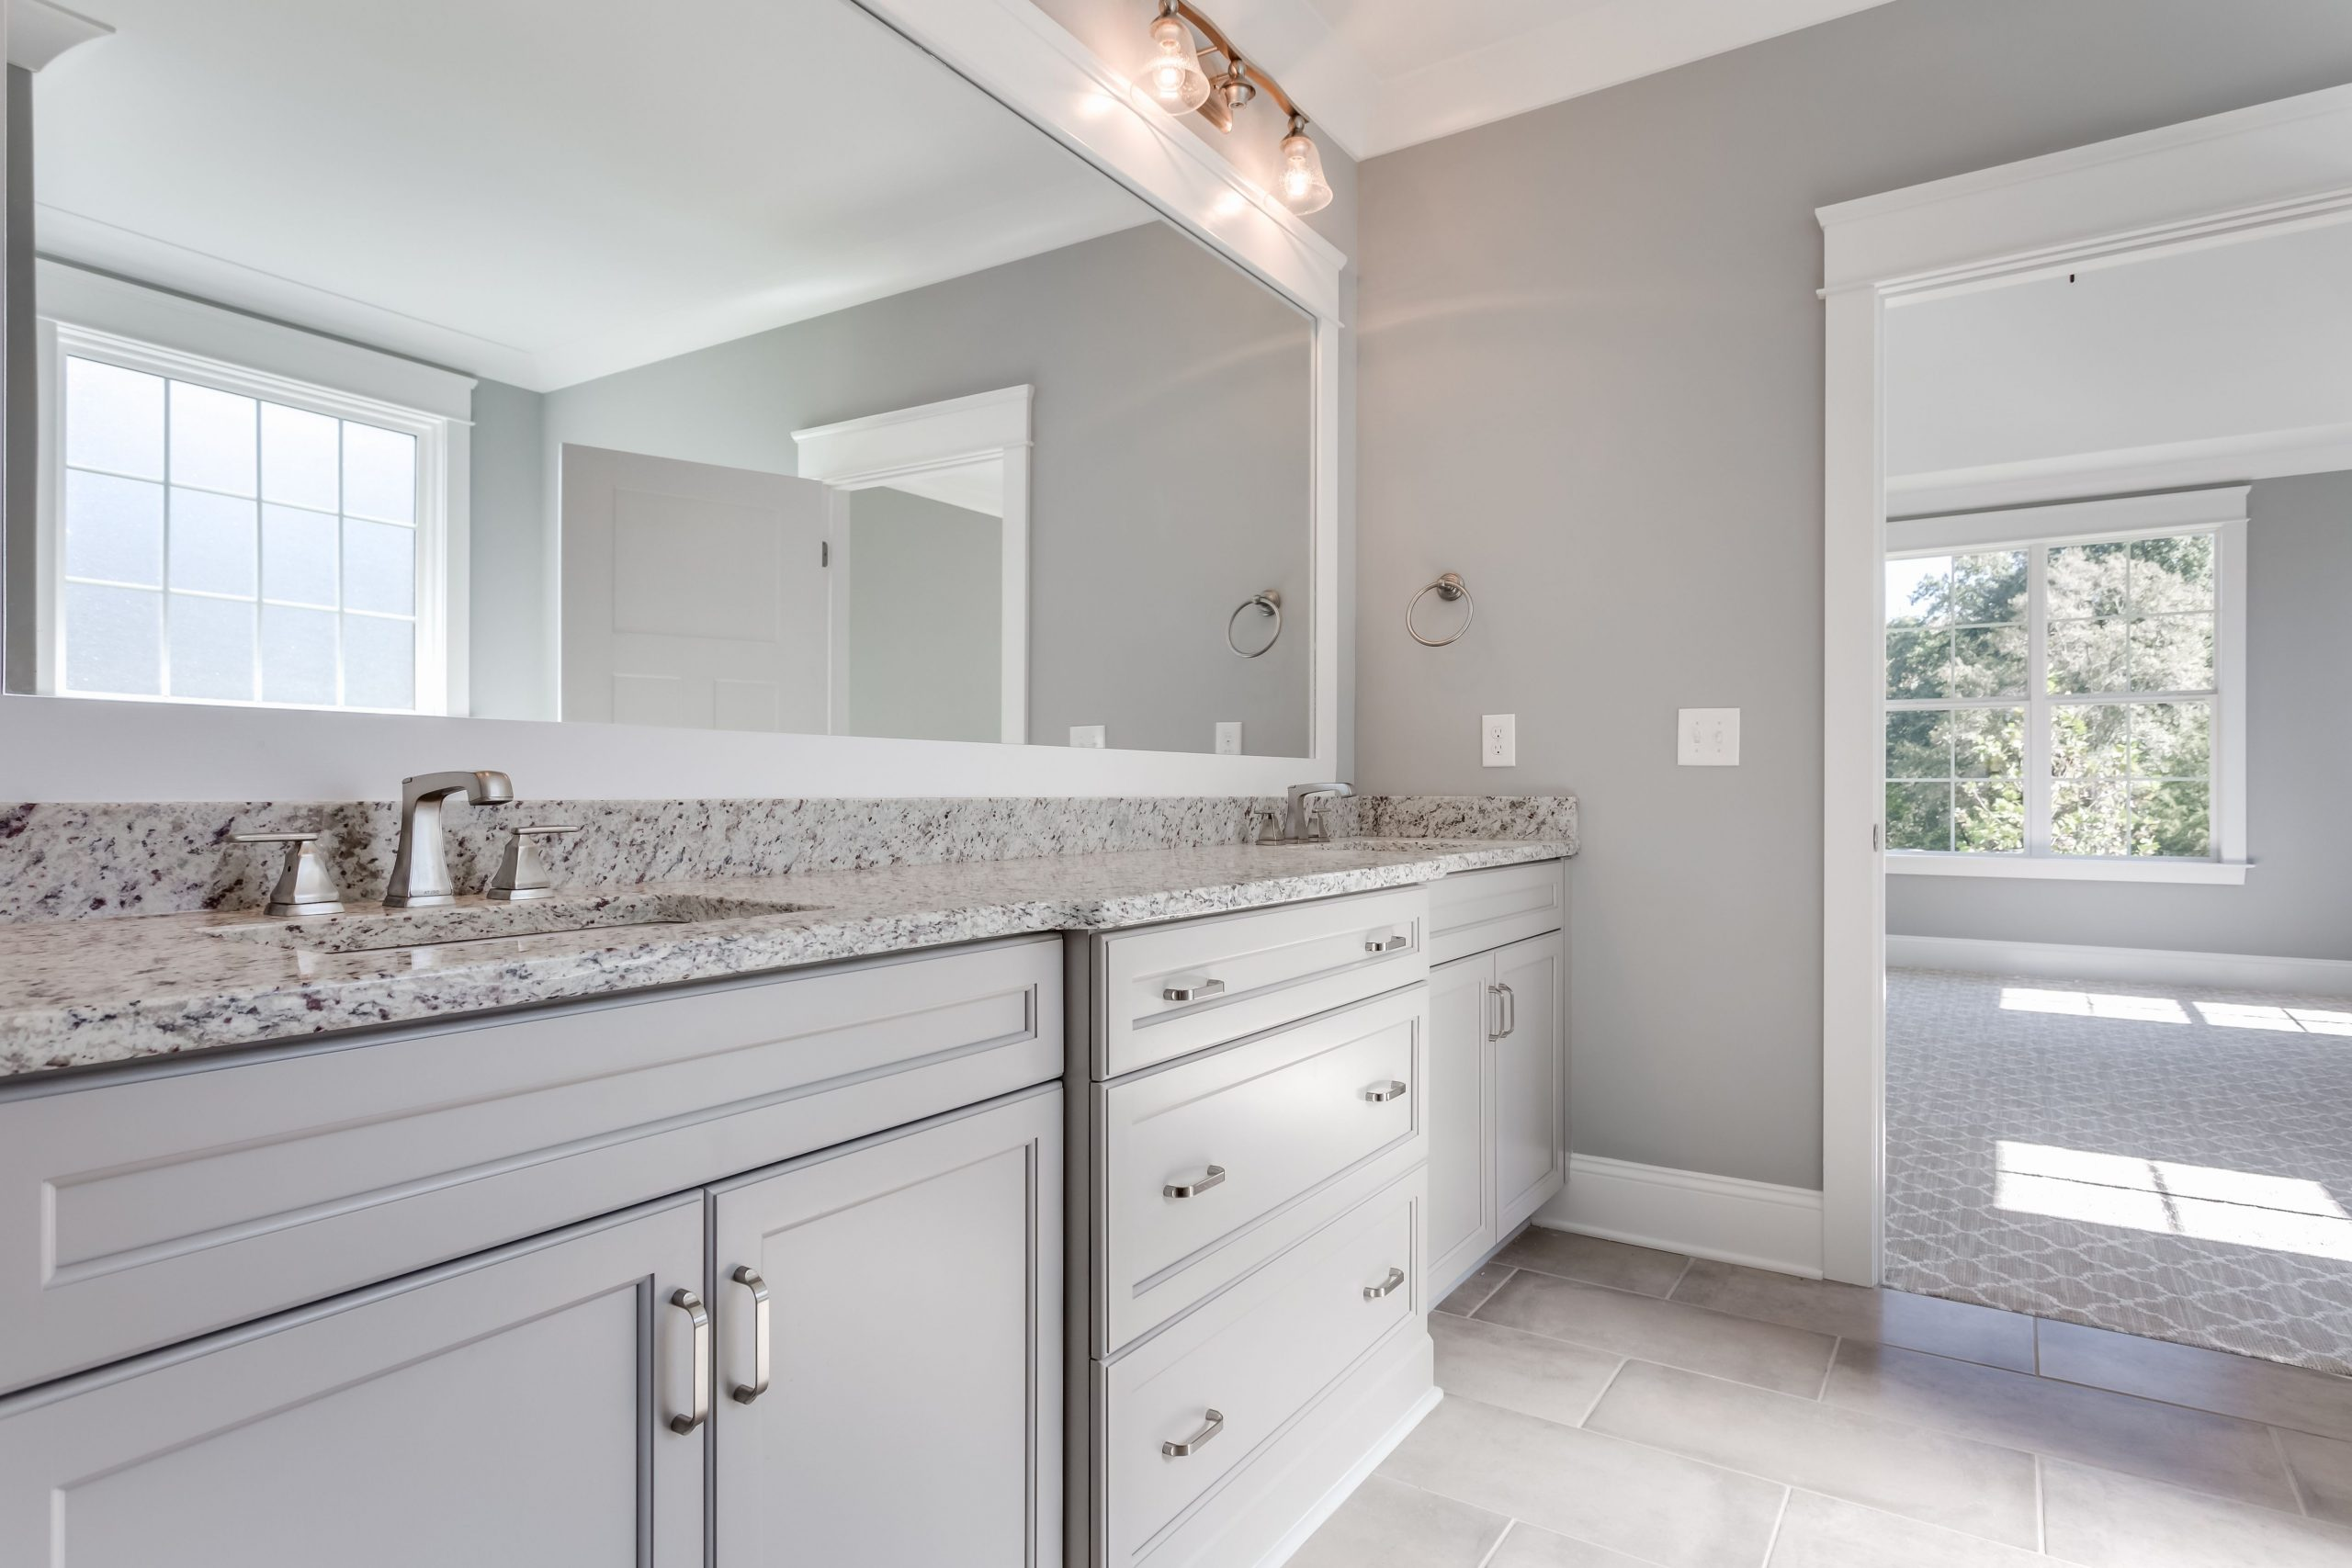 Visualize Your Bathroom Design With This Online Visualizer 10+ Bathroom Design Visualiser Ideas